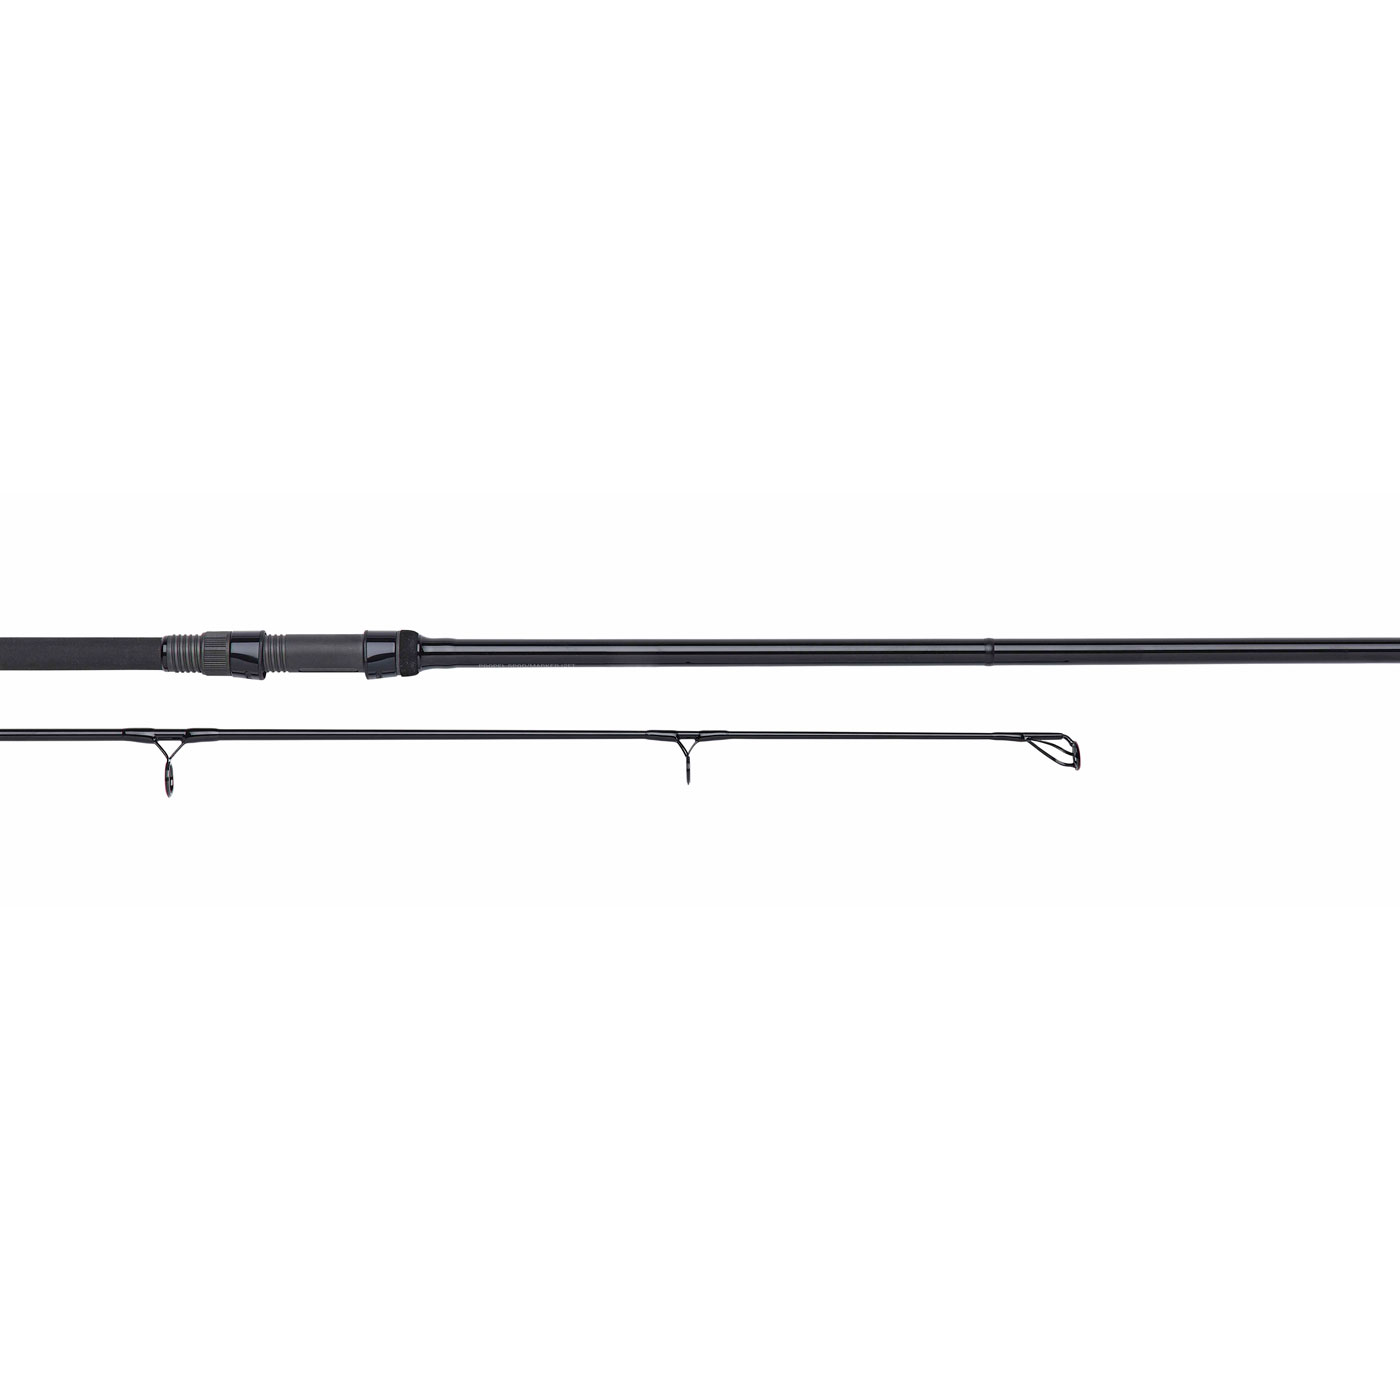 Trakker Propel 12ft Spod/Marker Rod